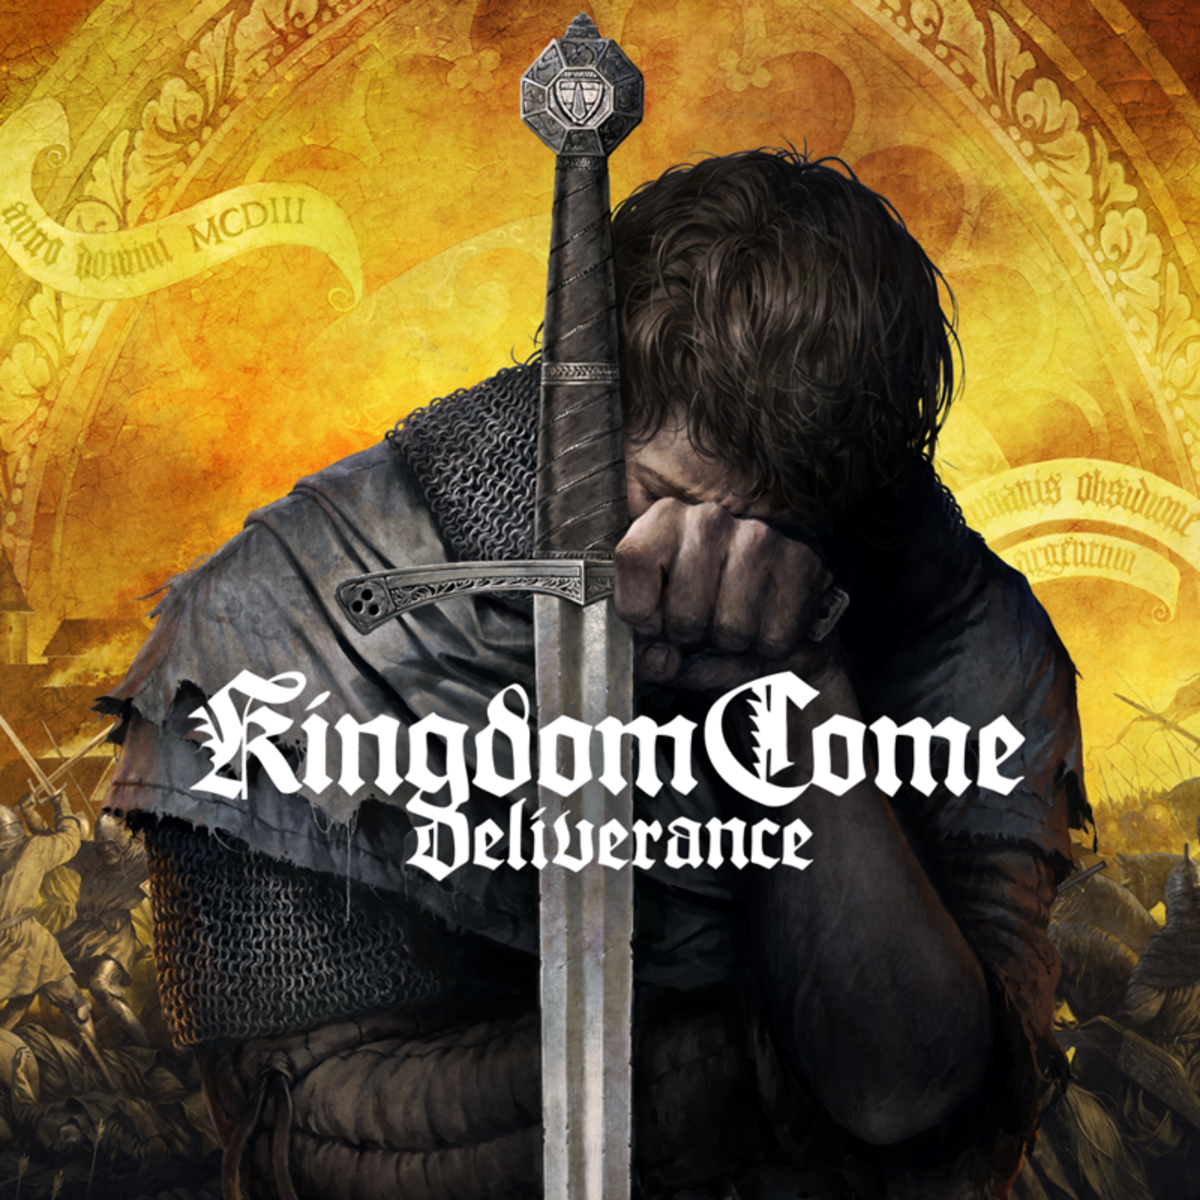 """Kingdom Come: Deliverance"" is fairly historically accurate for a video game."